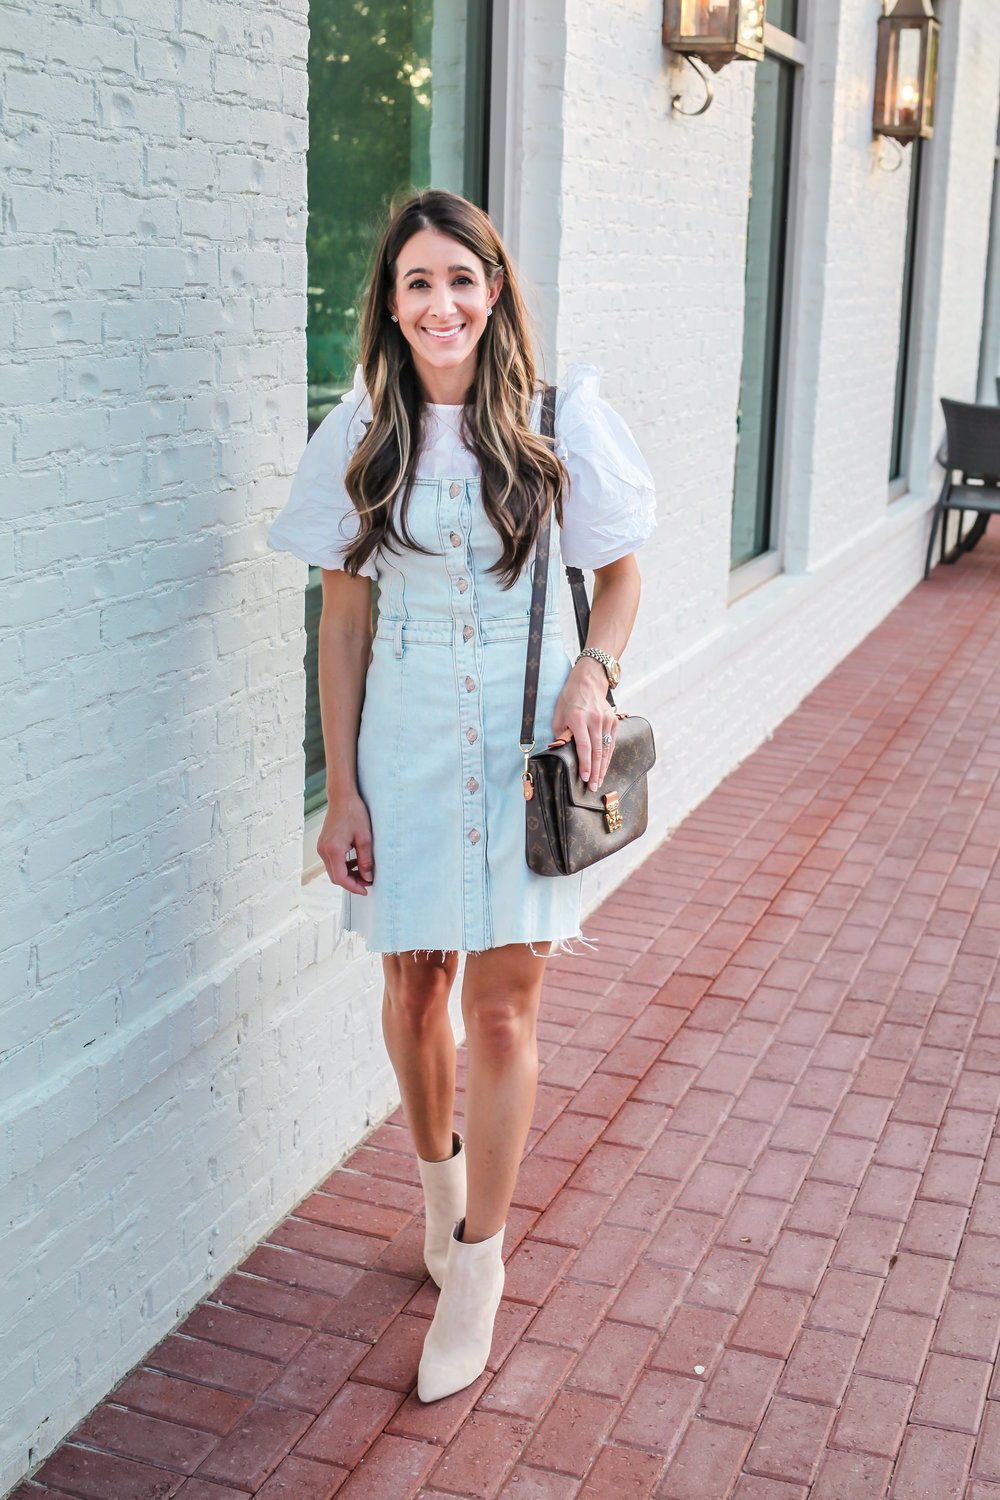 DRESS -  7 FOR ALL MANKIND  | SHIRT - LOFT - SIMILAR  HERE   | SHOES-  CHARLES DAVID  | BAG - LOUIS VUITTON | WATCH - ROLEX  | LIPSTICK - NARS | BLUSH - NARS COLOR IS DOLCE VITA